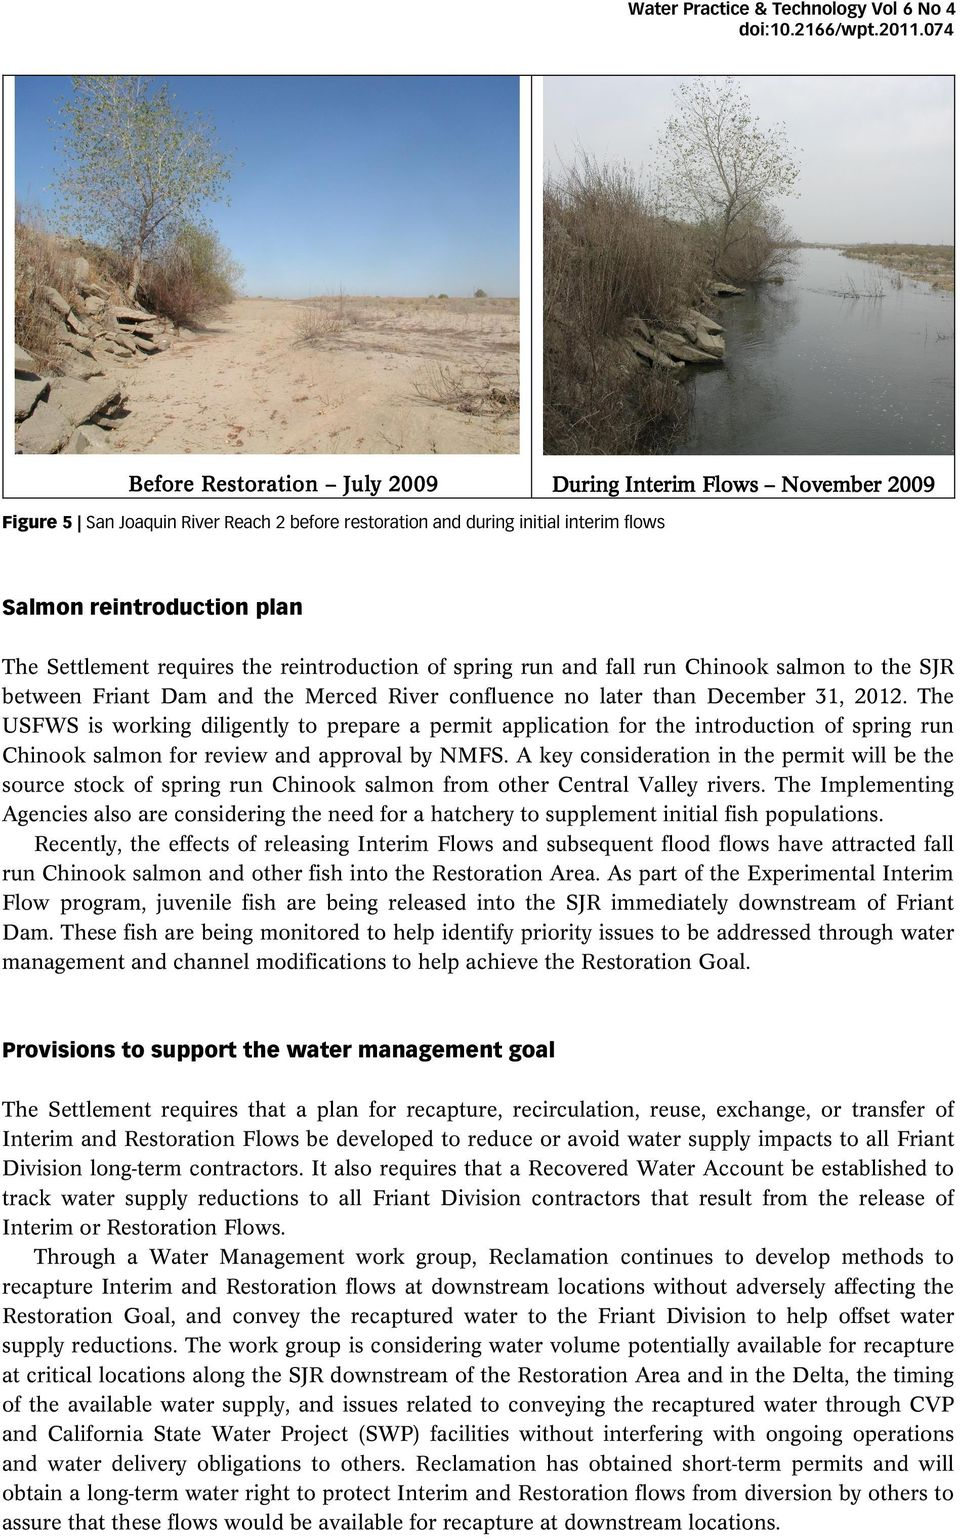 Settlement requires the reintroduction of spring run and fall run Chinook salmon to the SJR between Friant Dam and the Merced River confluence no later than December 31, 2012.